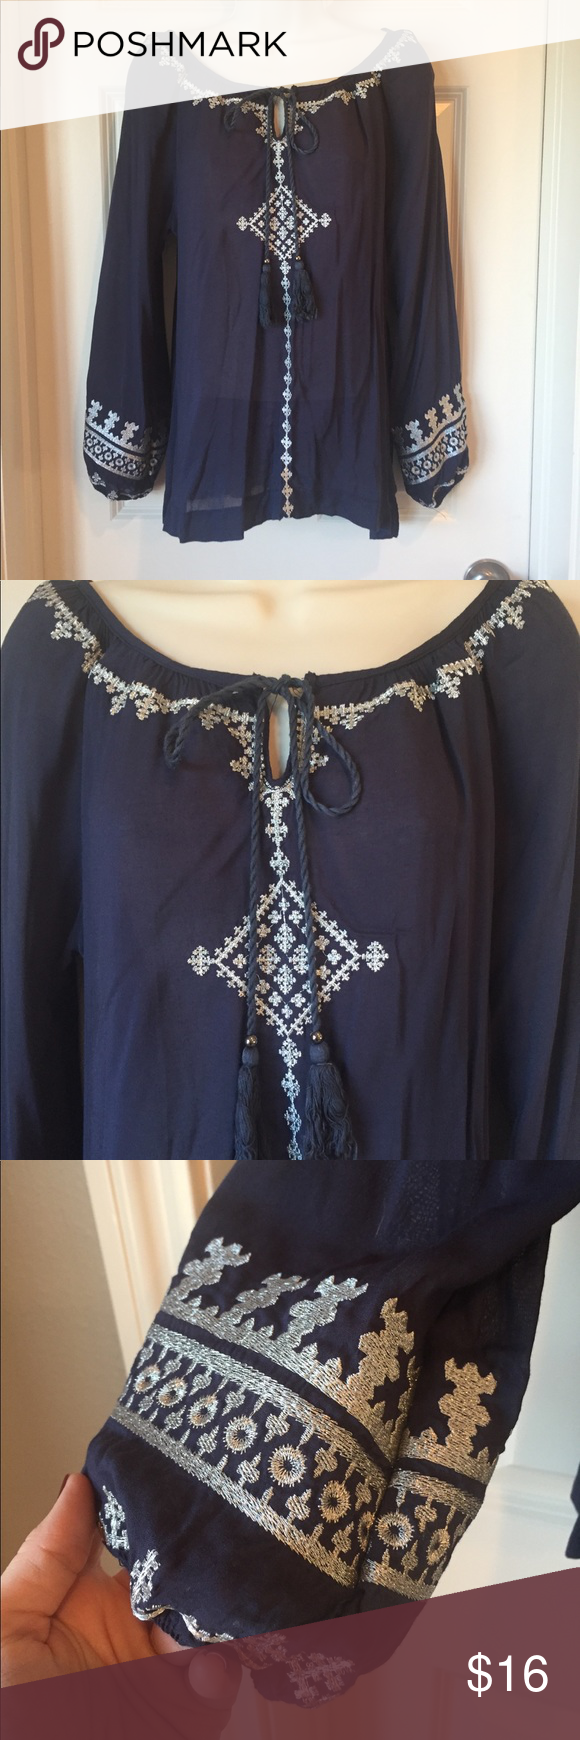 Urban Mango Navy embroidered top size M Only worn a few times great top, navy blue with silver embroidered details size m urban mango Tops Blouses